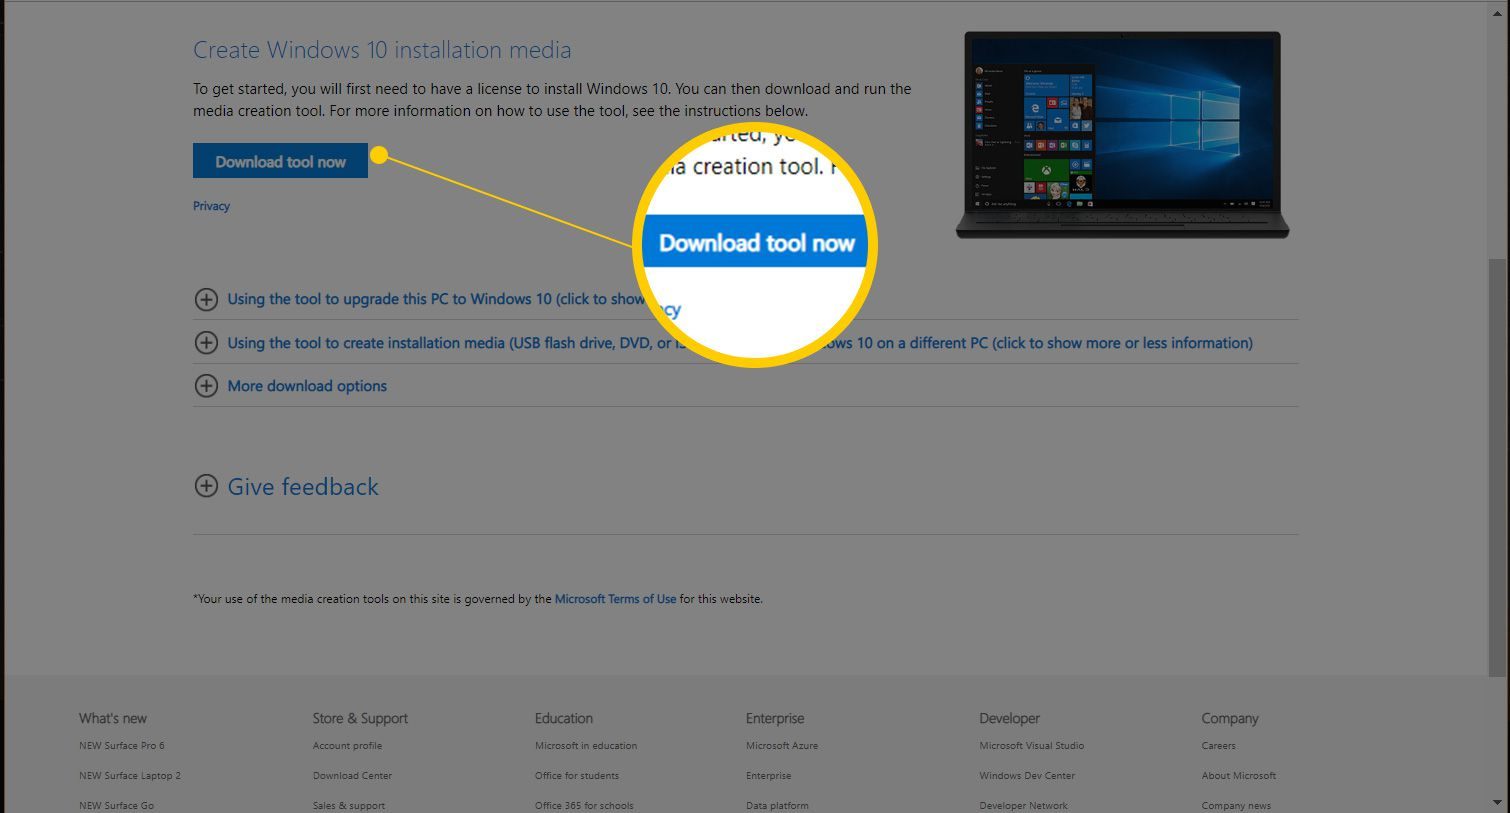 Where to Download Windows 10 (100% Legal Options)